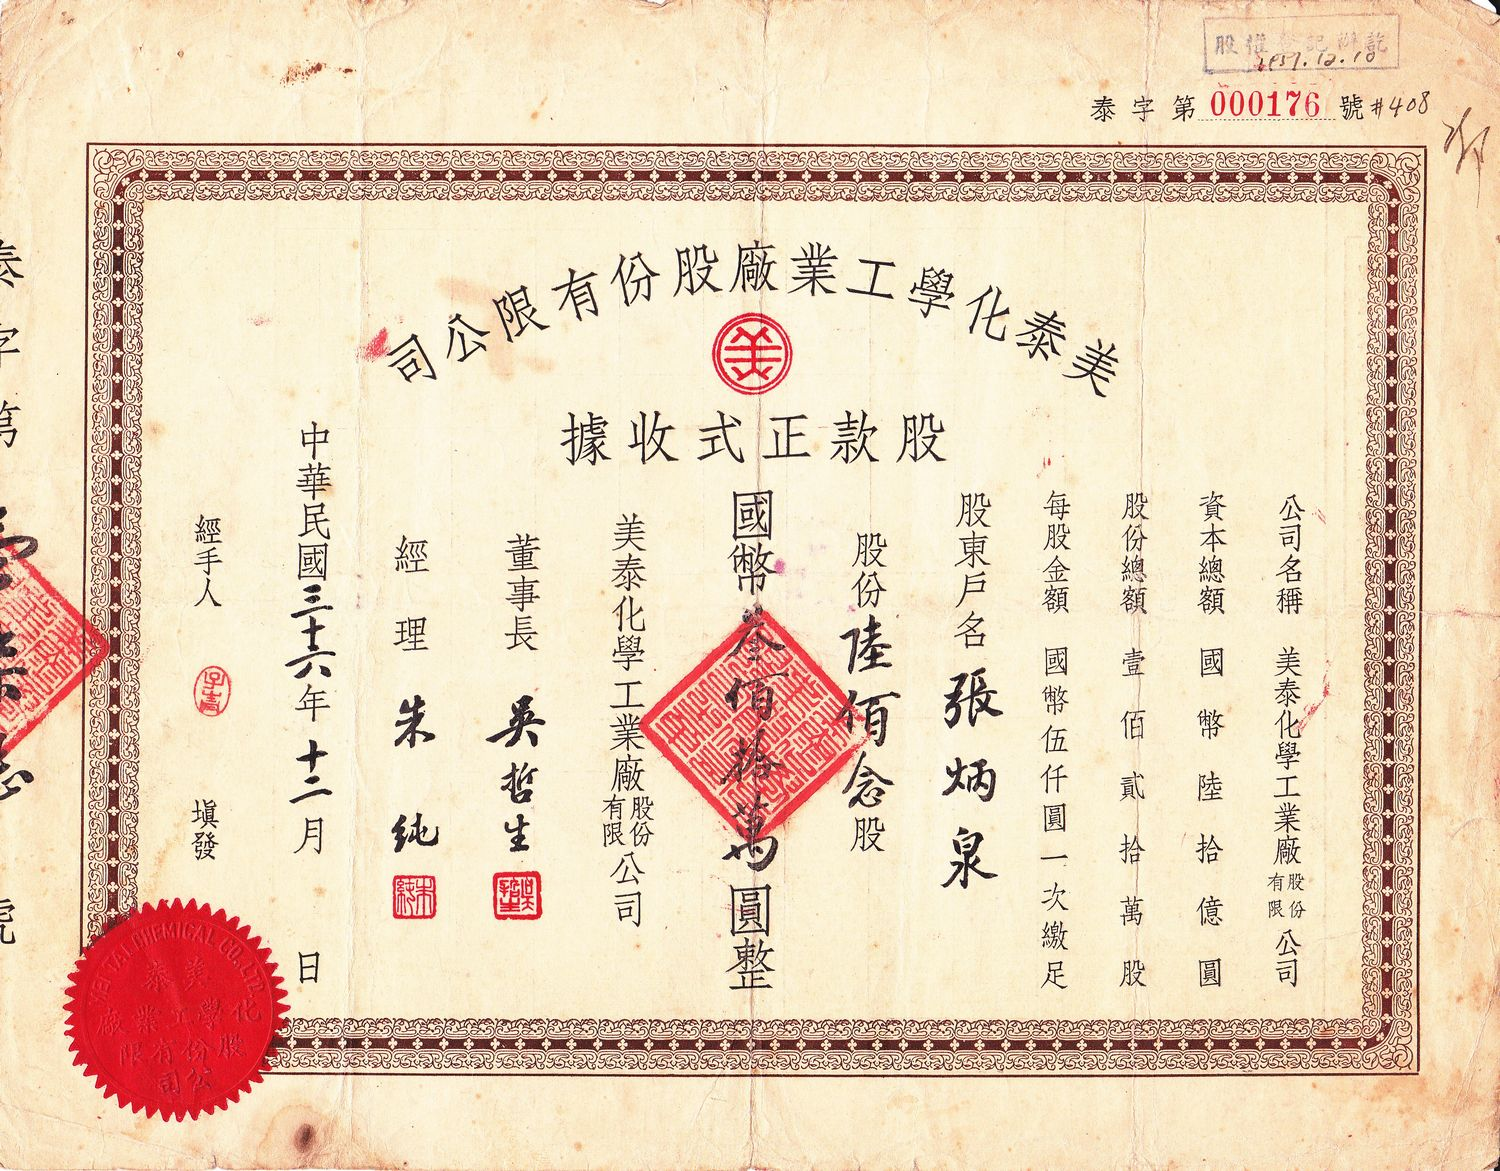 S1024, Mei-Tai Chemical Company, Stock Certificate 62 Shares, Shanghai 1947